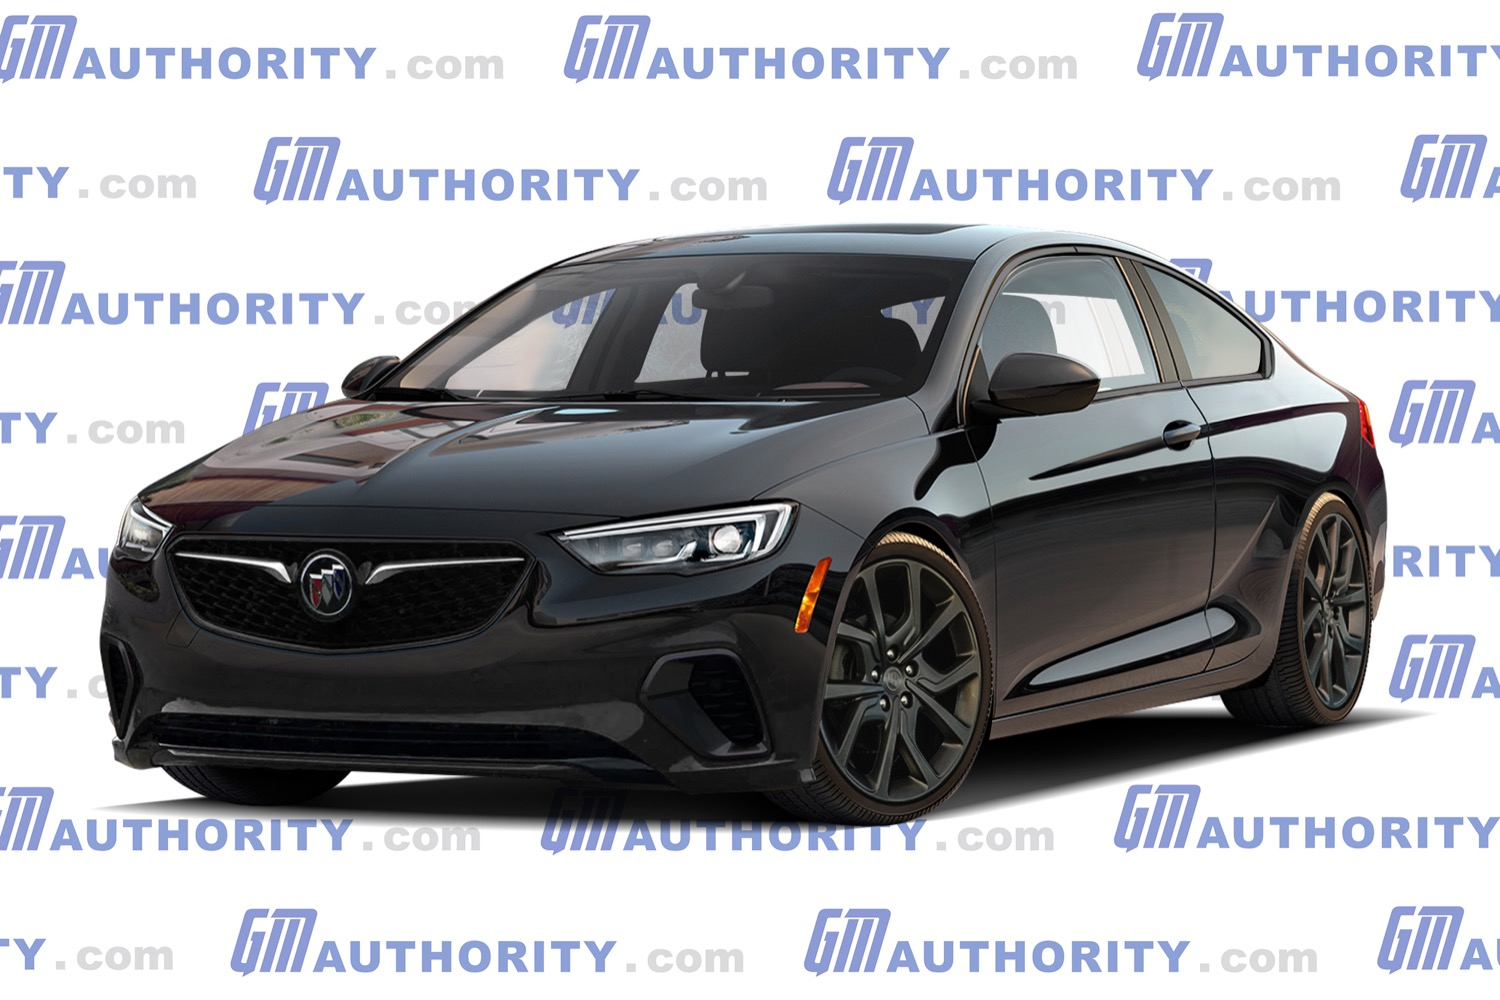 Modern Buick Regal Gnx Rendered | Gm Authority Where Is The New 2022 Buick Regal Built